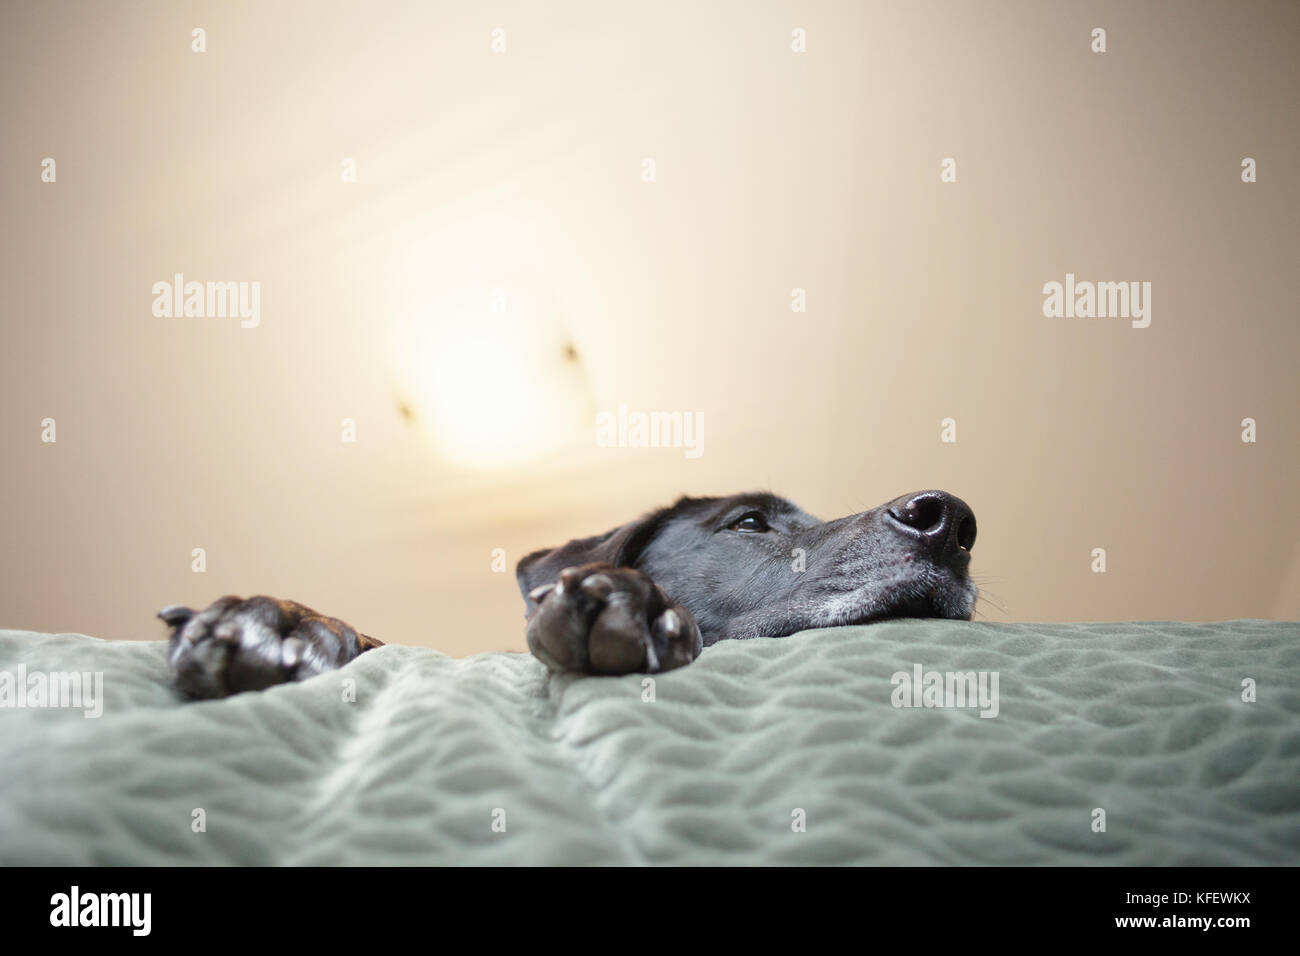 Big dog on bed. - Stock Image